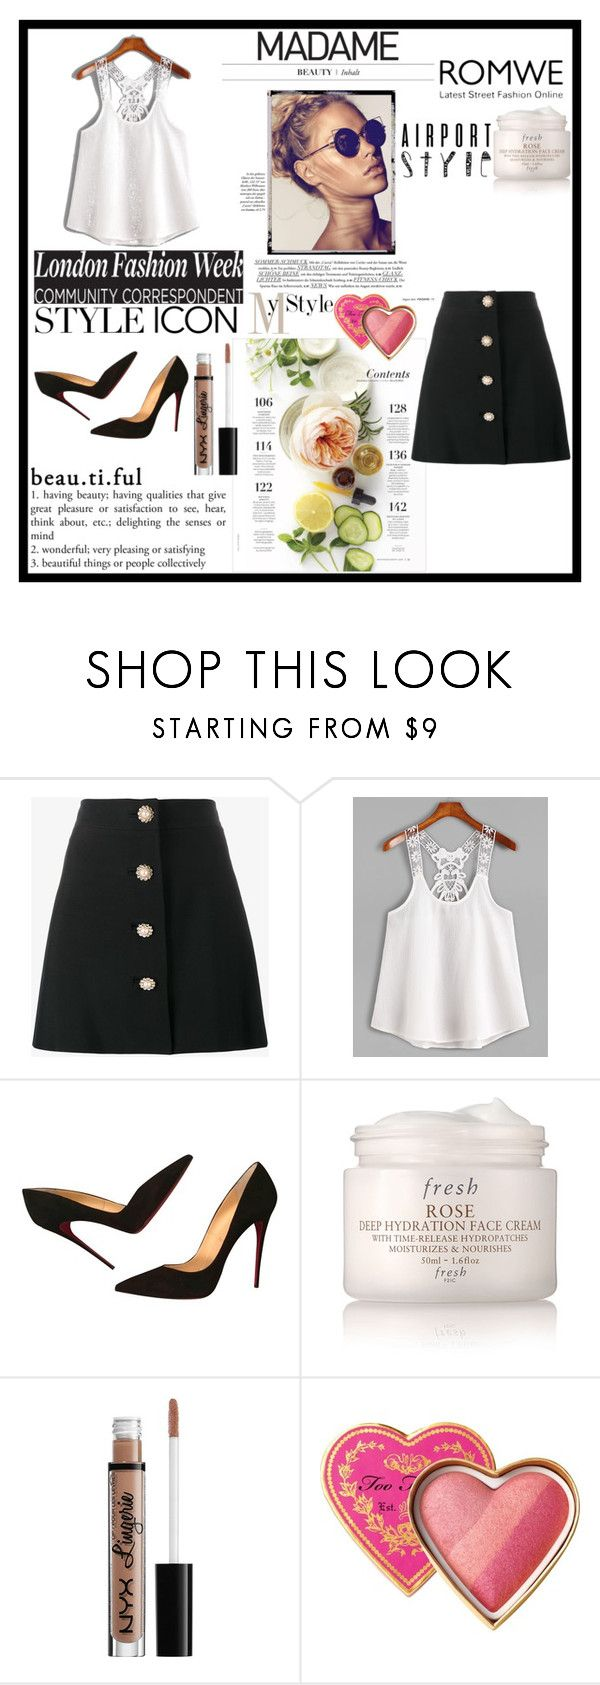 """/White-Contrast-Lace-Crochet-Cami-Top"" by almir-ks ❤ liked on Polyvore featuring Miu Miu, Christian Louboutin, Martha Stewart, Fresh, NYX, Too Faced Cosmetics and romwe"